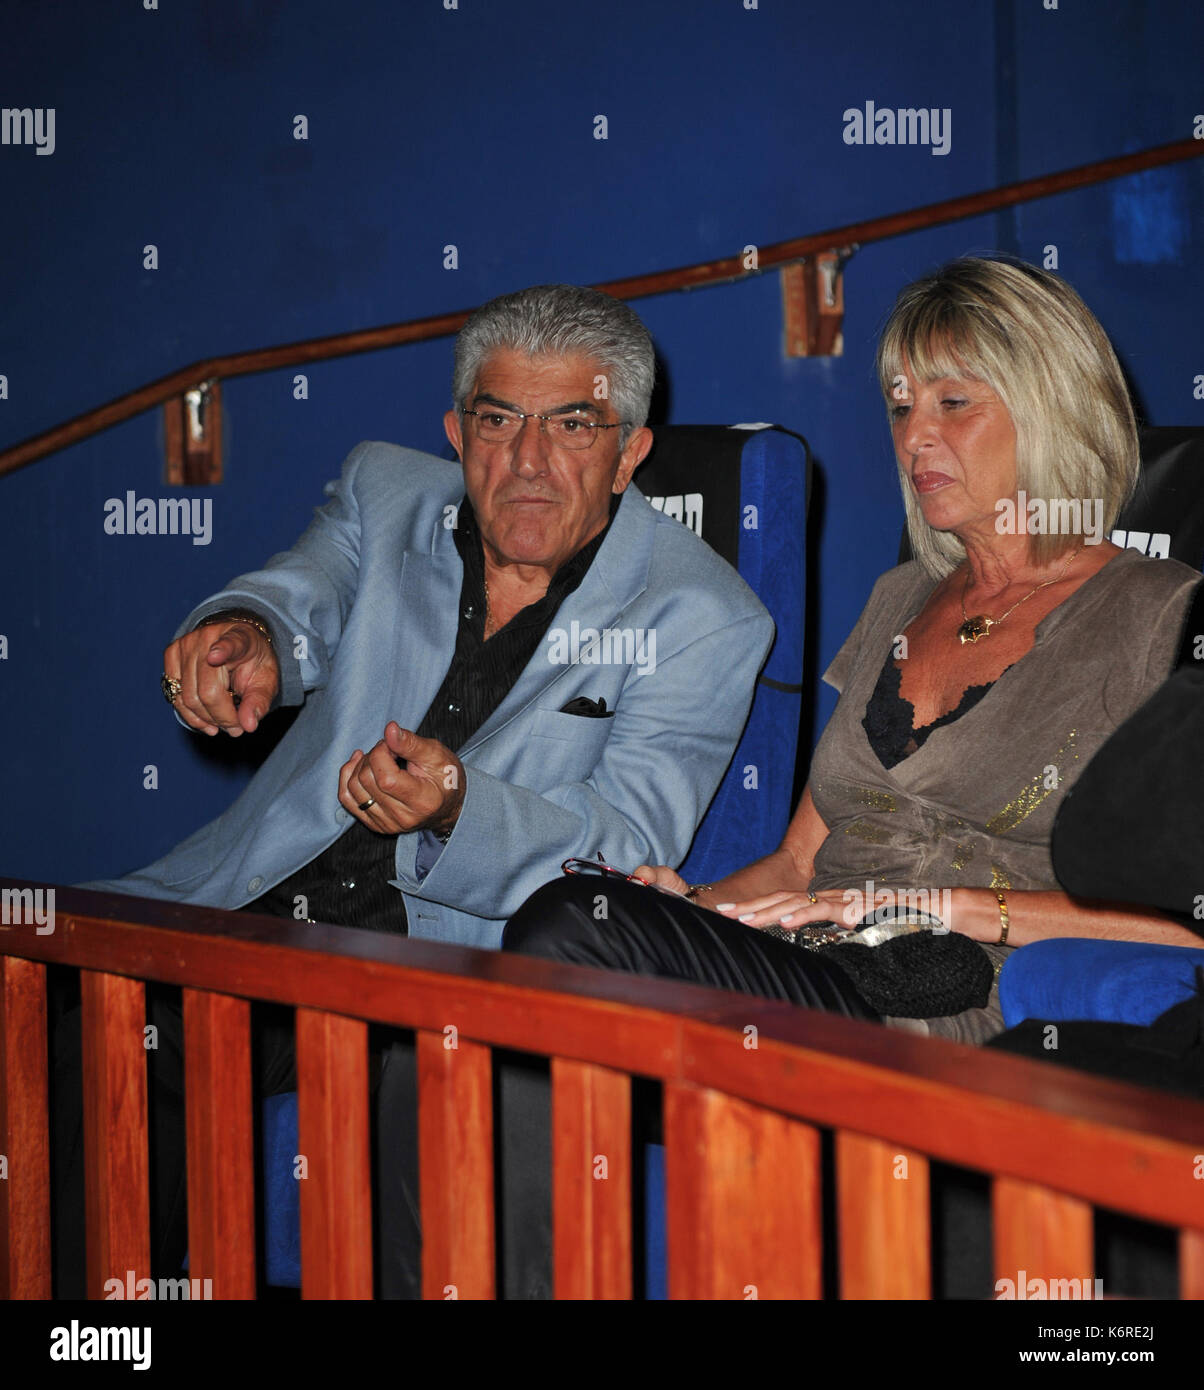 FORT LAUDERDALE, FL - JANUARY 08: Frank Vincent arrives at the screening of Genus On Hold at Cinema Paradiso. GENIUS ON HOLD is a documentary film narrated by Frank Vincent (Goodfellas, Casino, Raging Bull) that tells the epic story of Walter L. Shaw, an engineering genius who, more than half a century ago, invented technology that transformed the rudimentary telephone system of the 1950's into the foundation of today's cutting edge global telecommunications industry. AT&T held a stranglehold monopoly. on January 8, 2009 in Fort Lauderdale, Florida. Credit: mpi122/MediaPunch - Stock Image